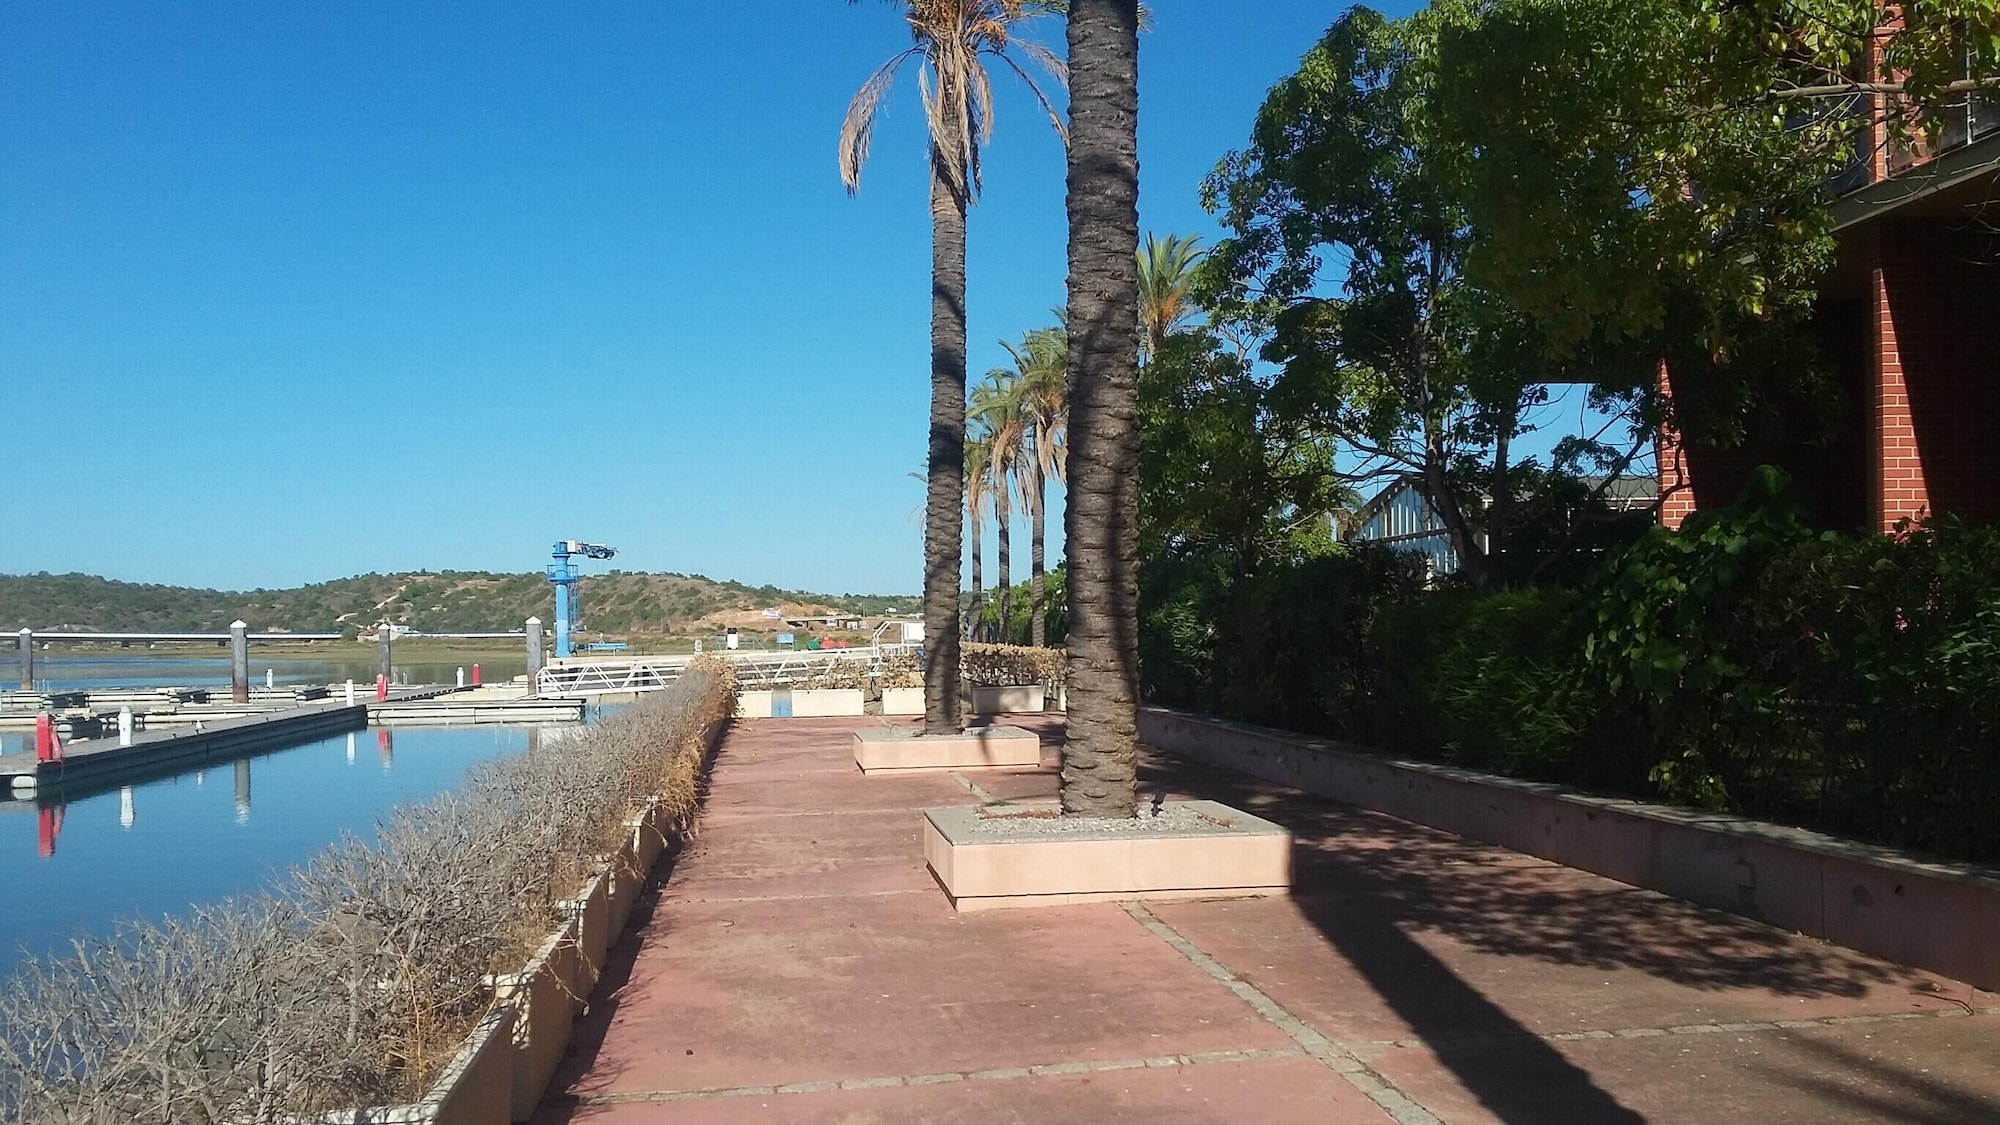 Apartment With one Bedroom in Estômbar, With Wonderful sea View, Private Pool, Enclosed Garden - 2 km From the Beach, Lagoa